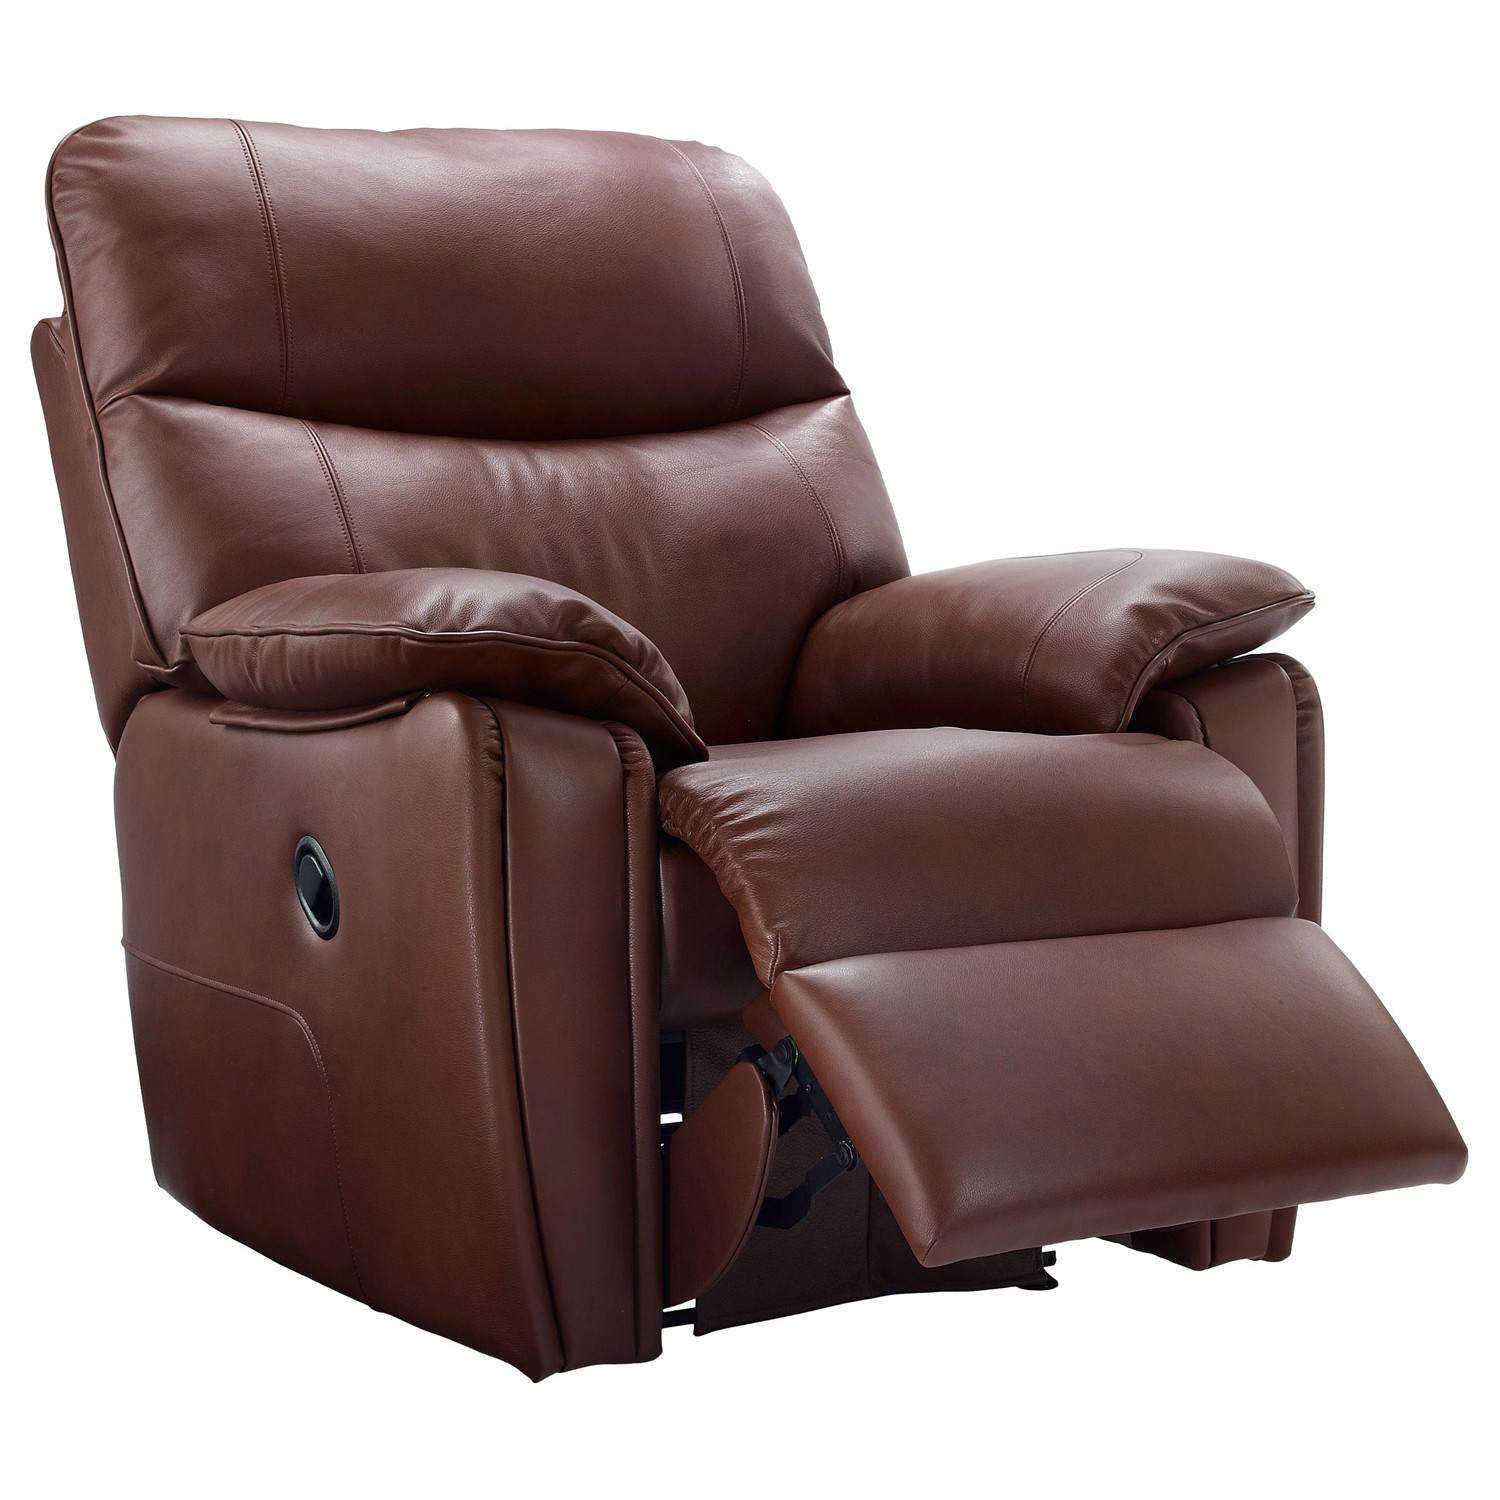 power recliner chairs uk sam s club upholstered g plan henley chair